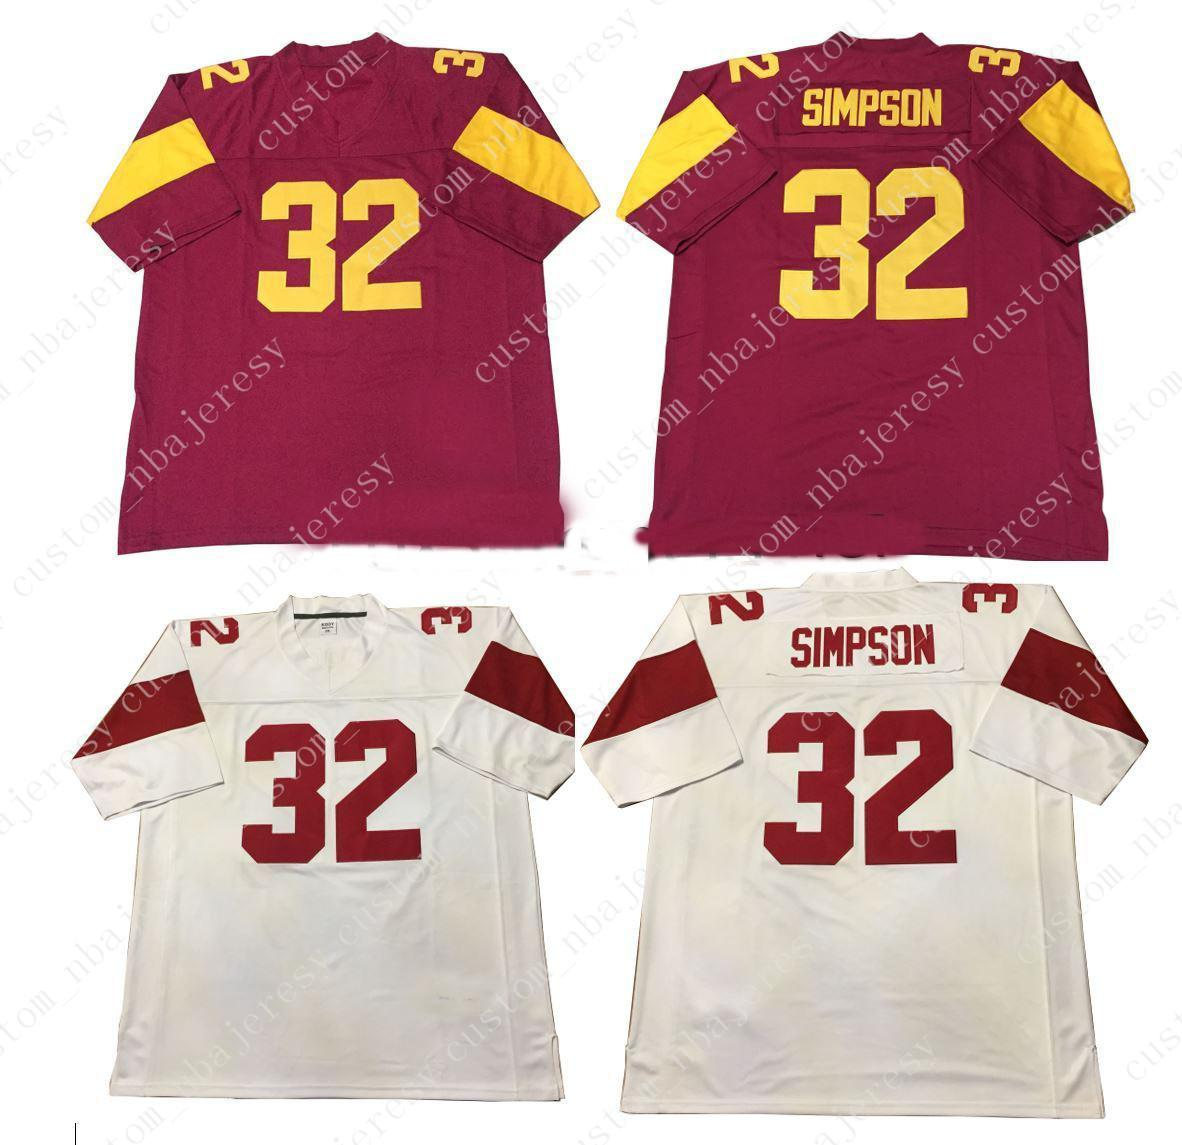 22f791b9c 2019 Cheap Custom OJ Simpson USC Trojans Football Jersey  32 College  Football Customized Any Name Number Stitched Jersey XS 5XL From  Custom nbajersey